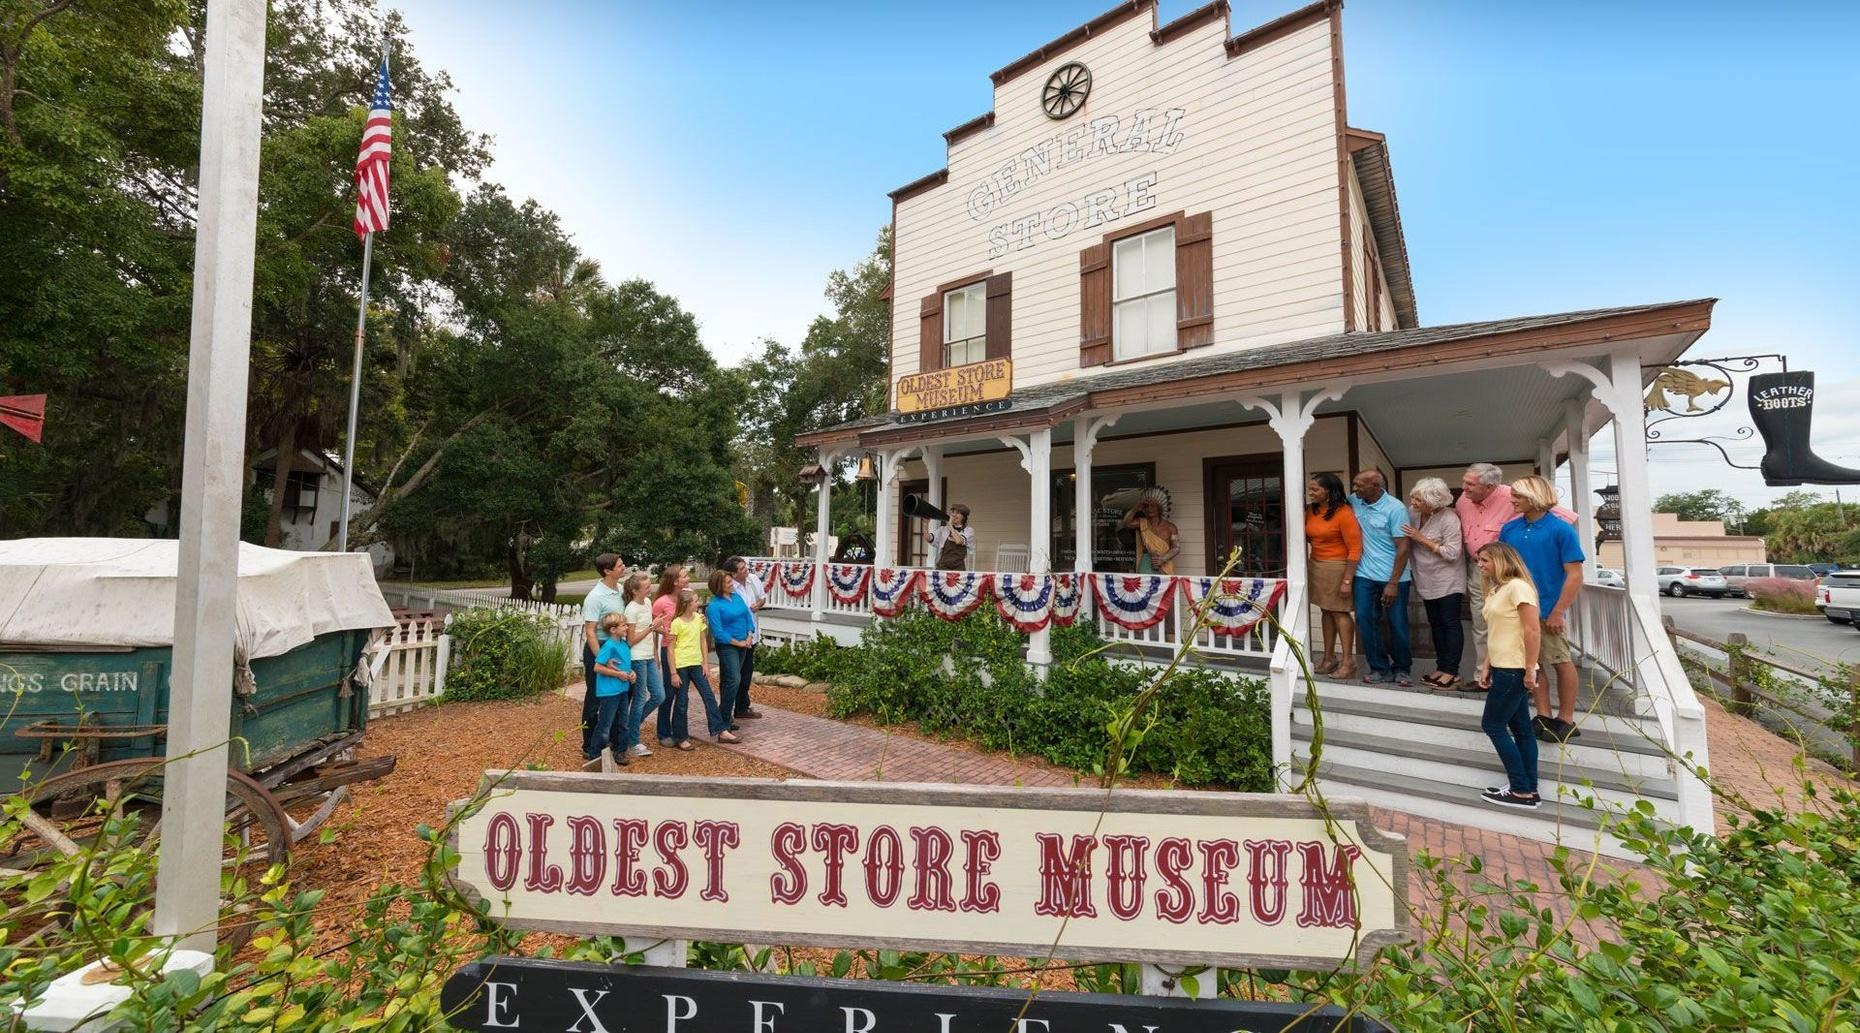 St. Augustine Oldest Store Museum Tour